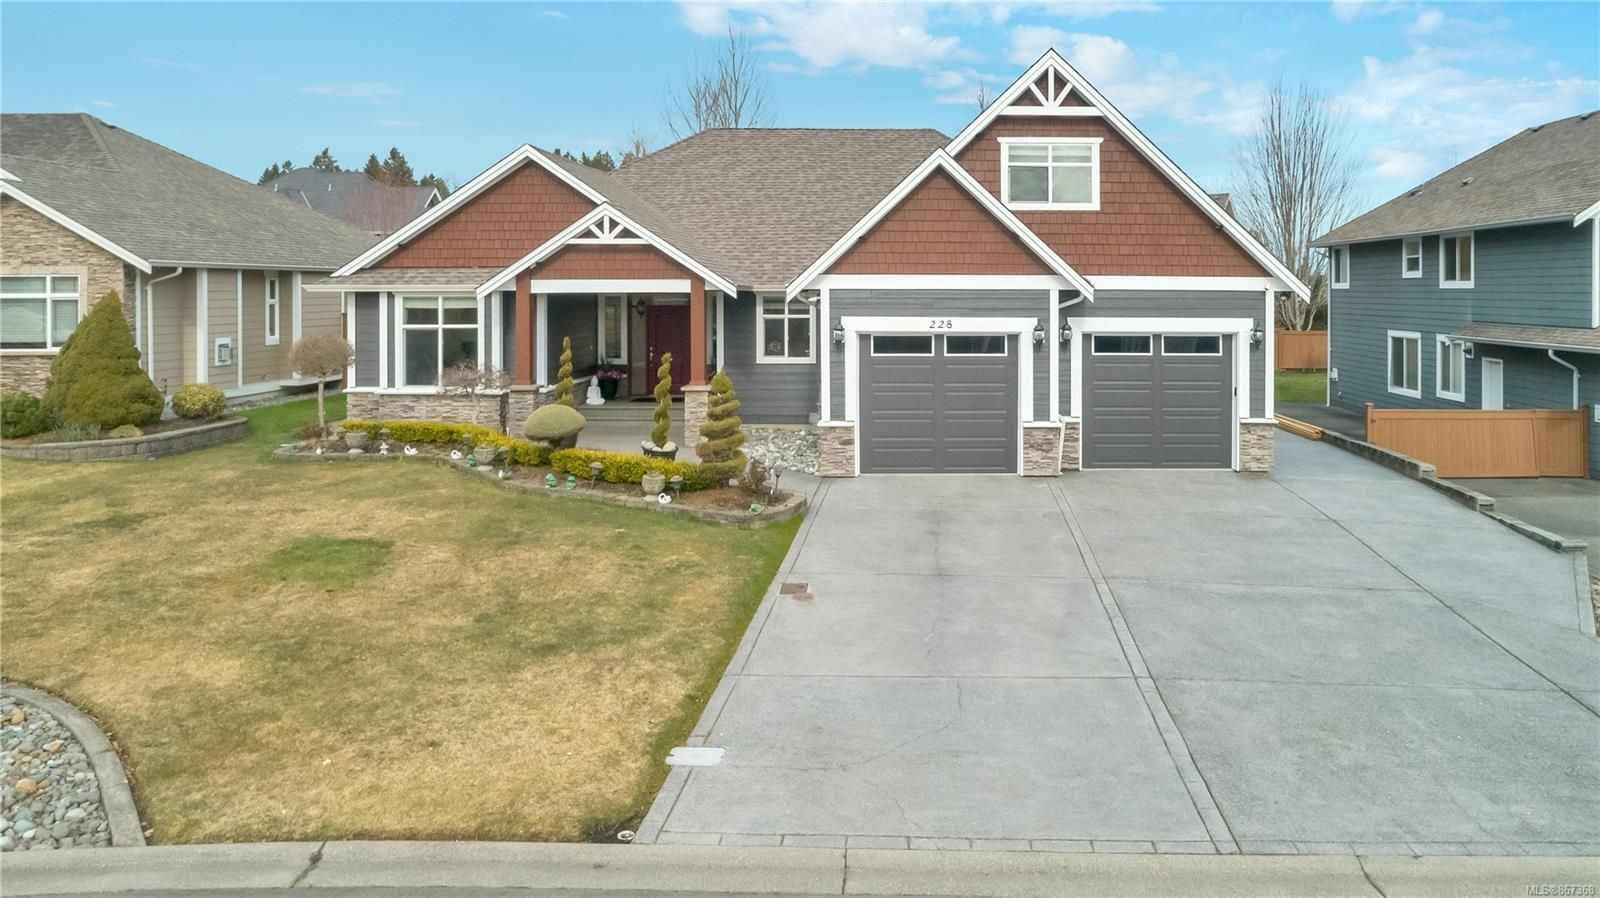 Main Photo: 228 Virginia Dr in : CR Willow Point House for sale (Campbell River)  : MLS®# 867368